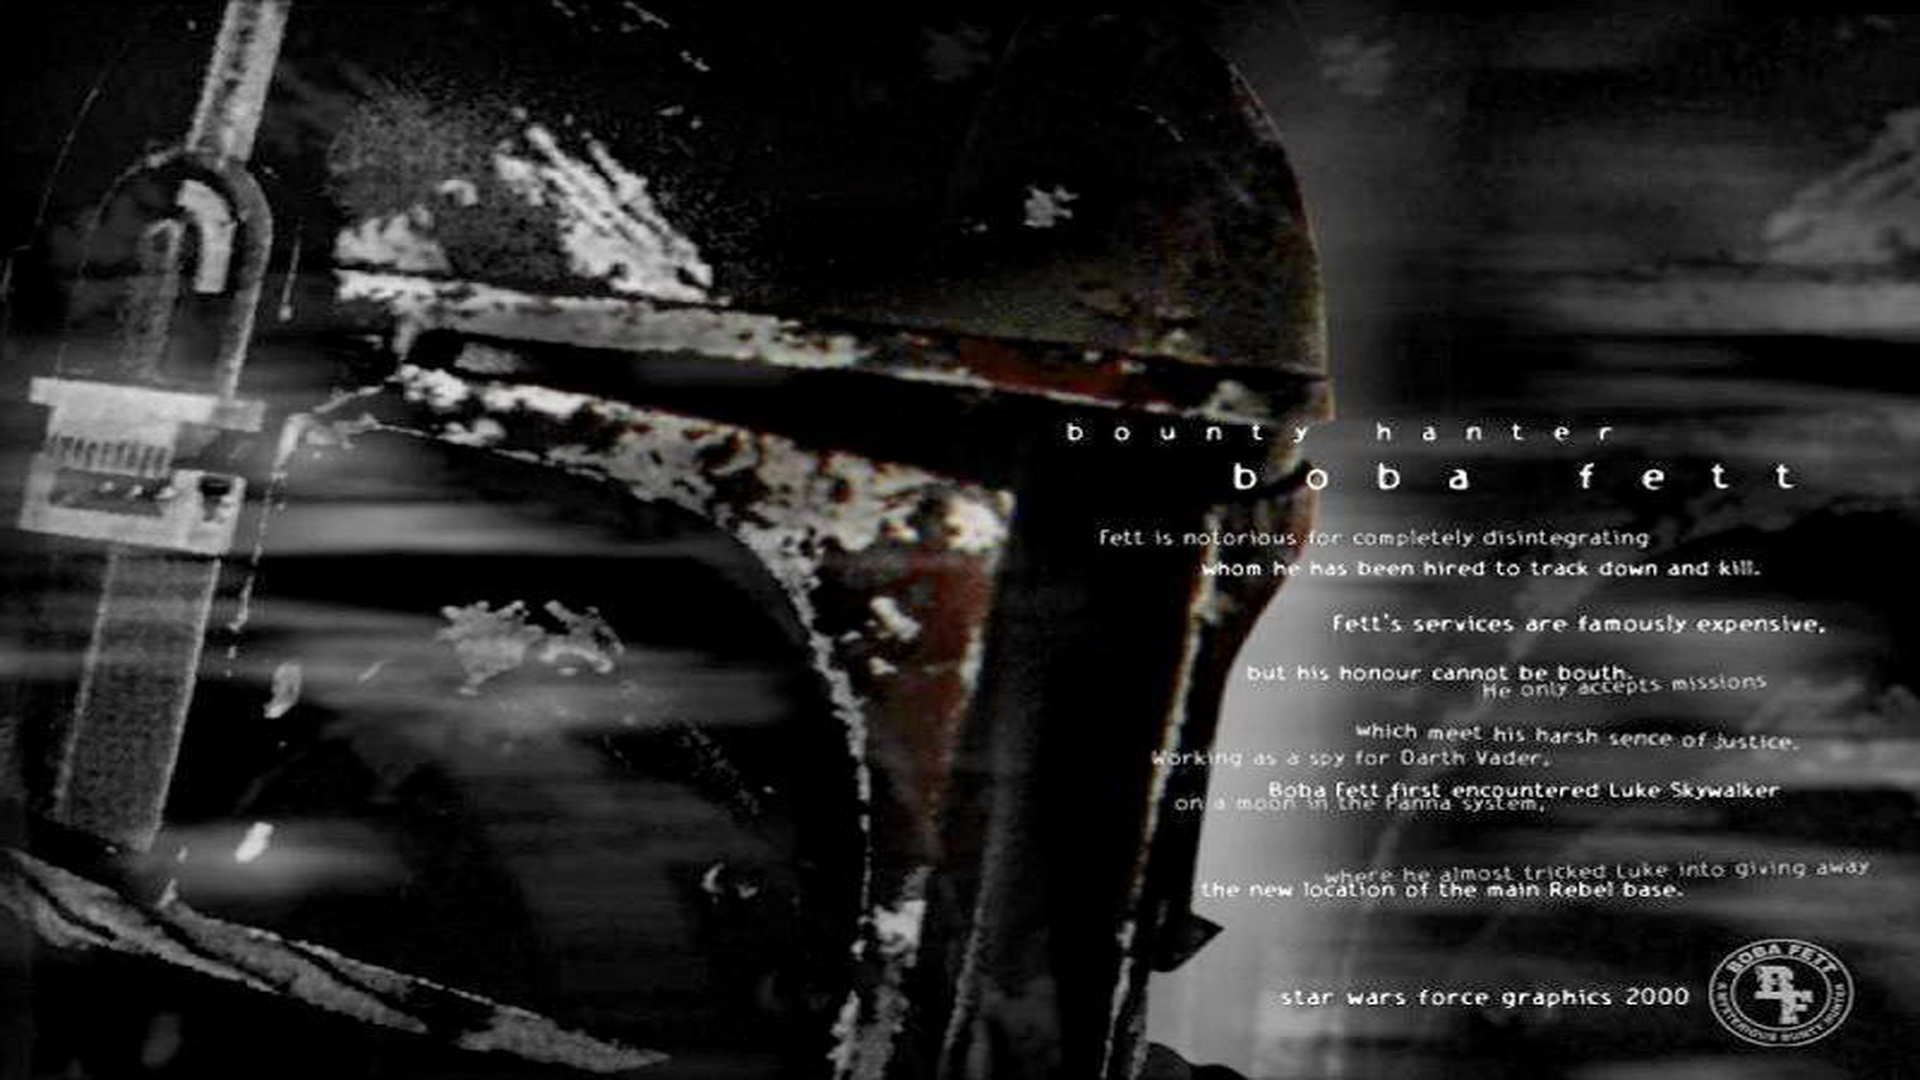 Source URL httpkootationcomboba fett movie jpghtml 1920x1080